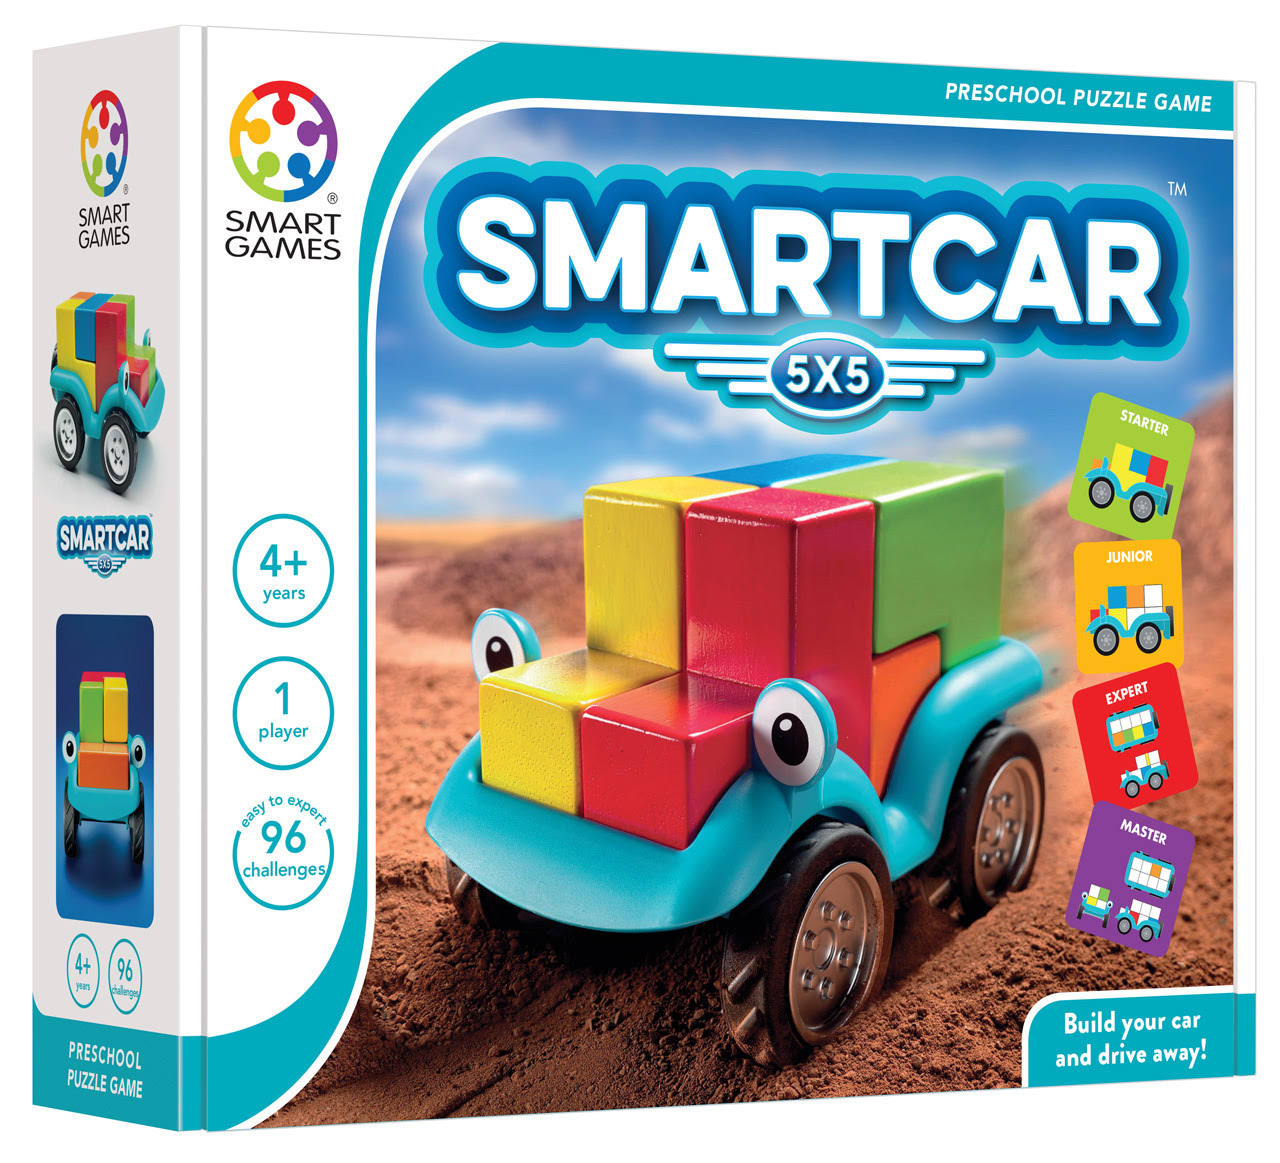 Smart Games Smart Car Preschool Puzzle Game Toy - 5 x 5